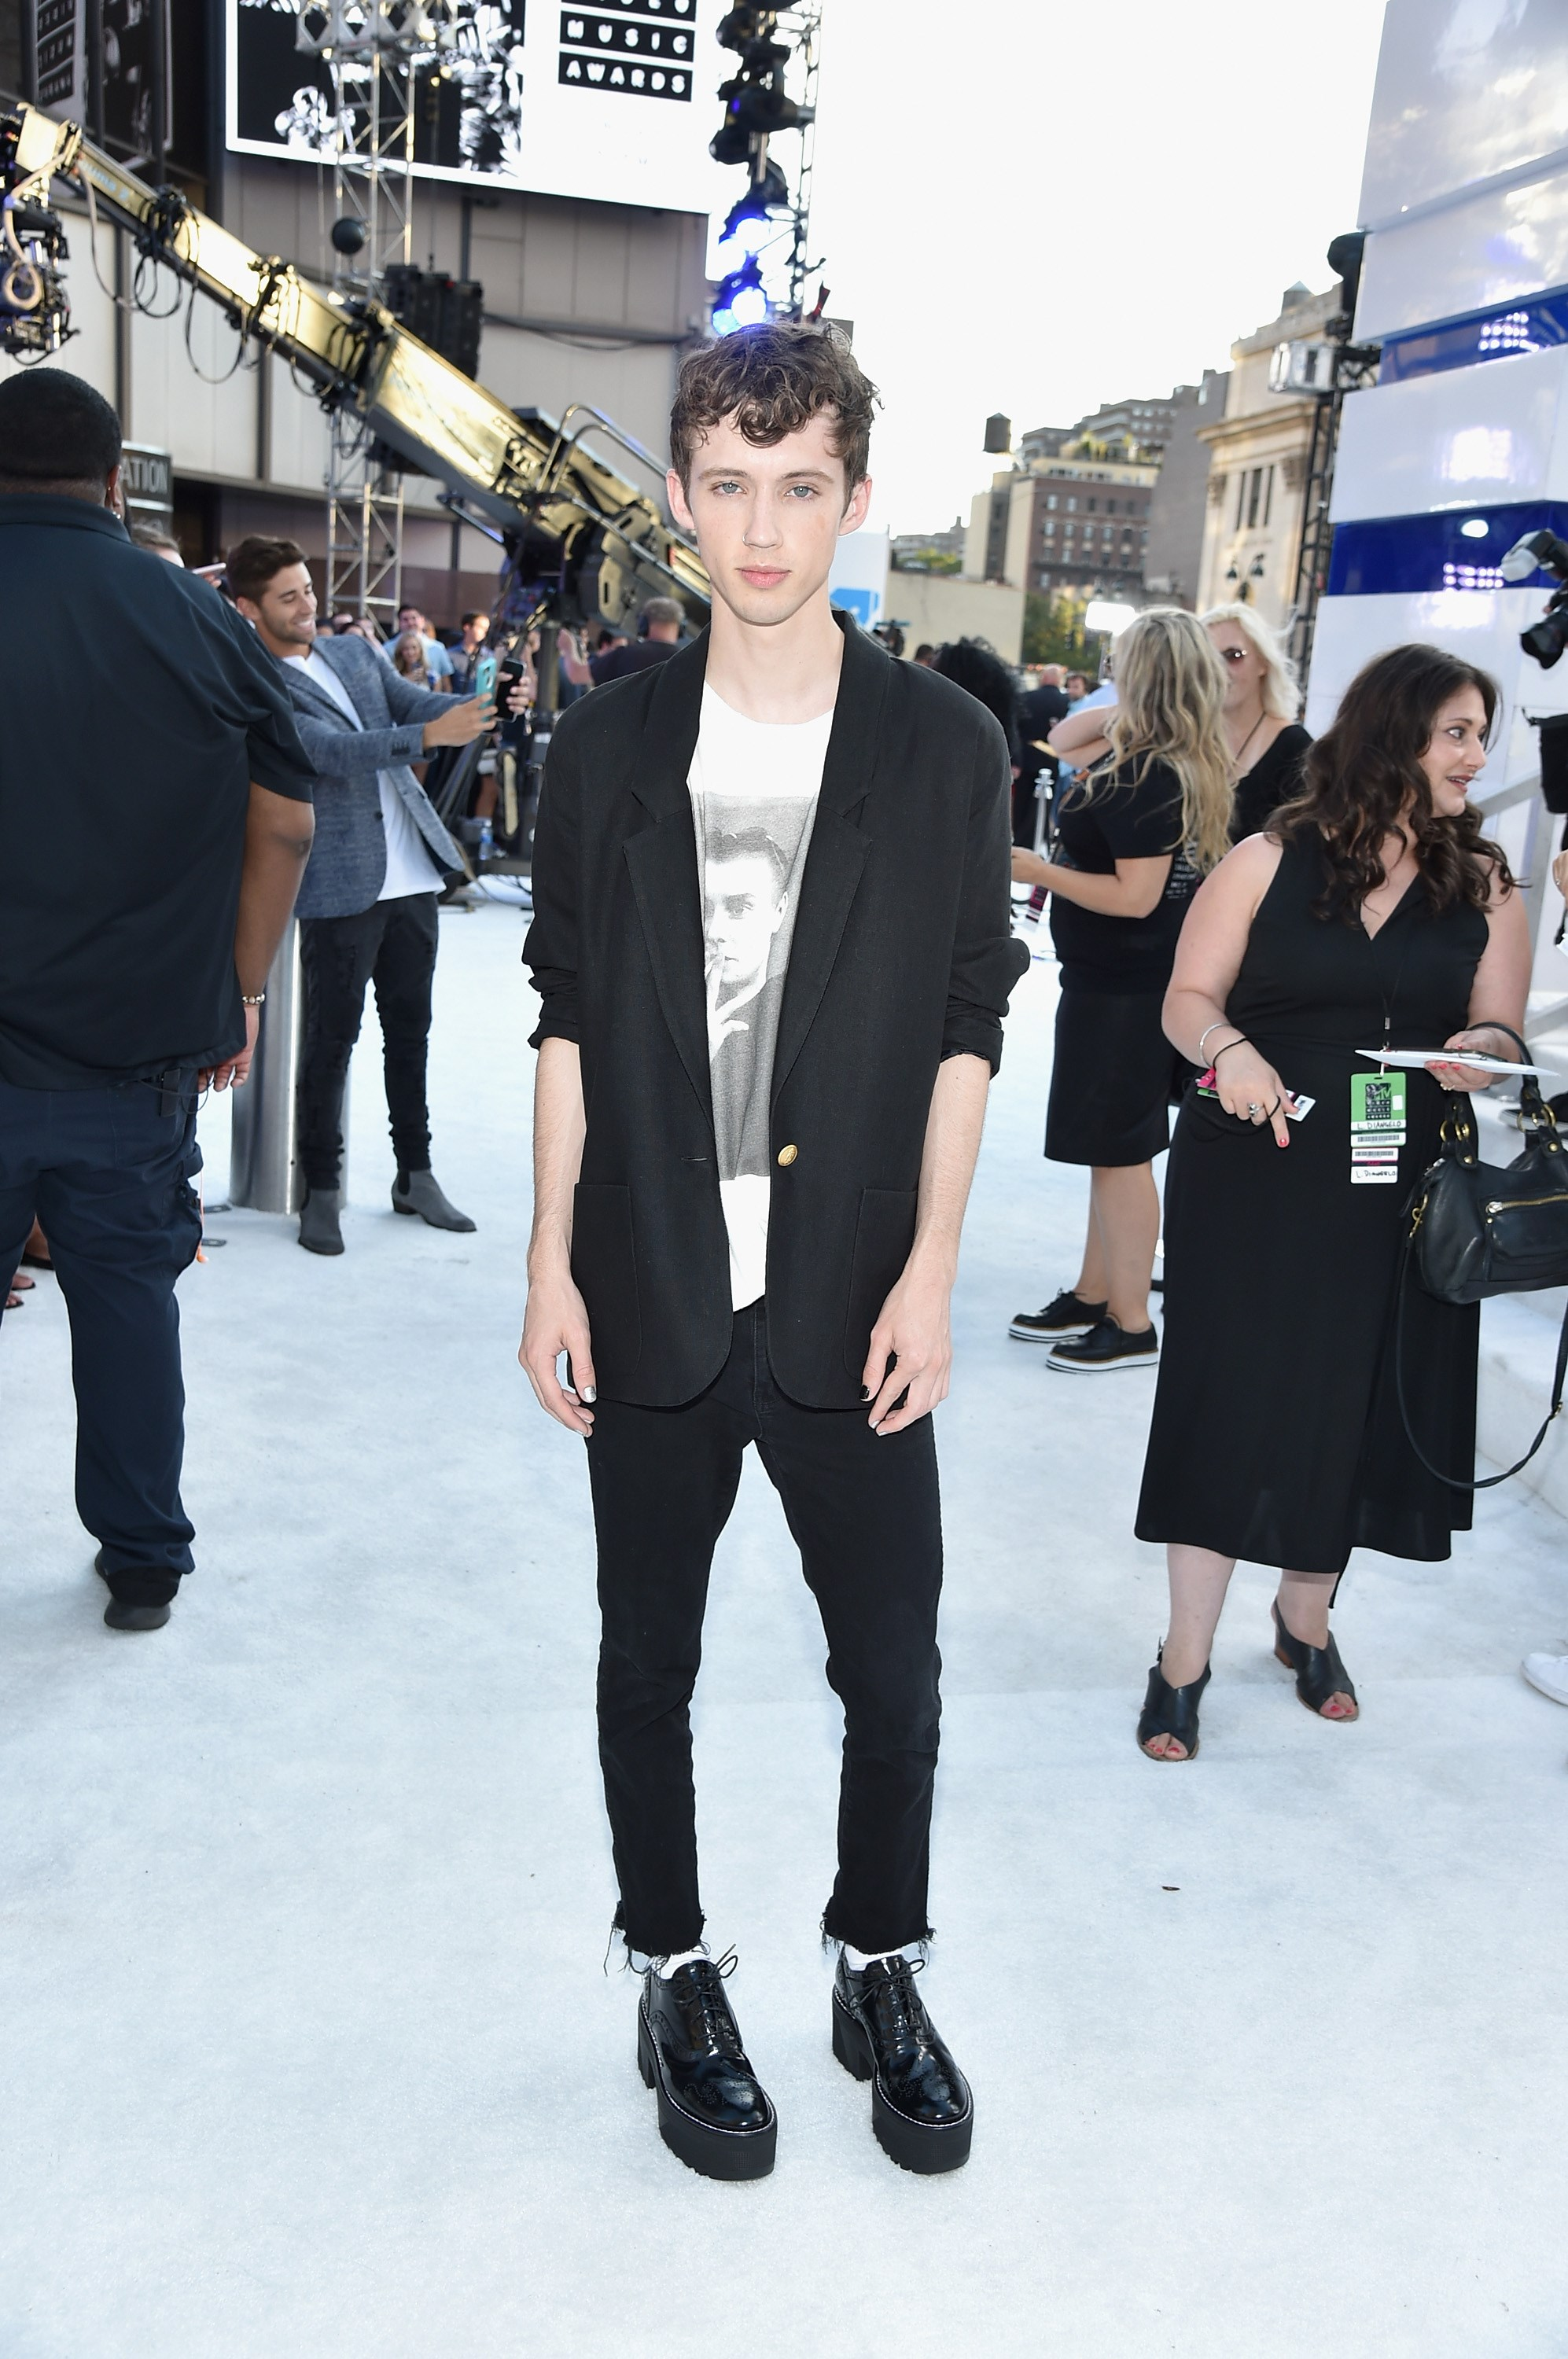 "Fresh off the reveal of his [*V Magazine* cover with model Taylor Hill](http://vmagazine.com/article/face-the-music-troye-sivan-taylor-hill/|target=""_blank""